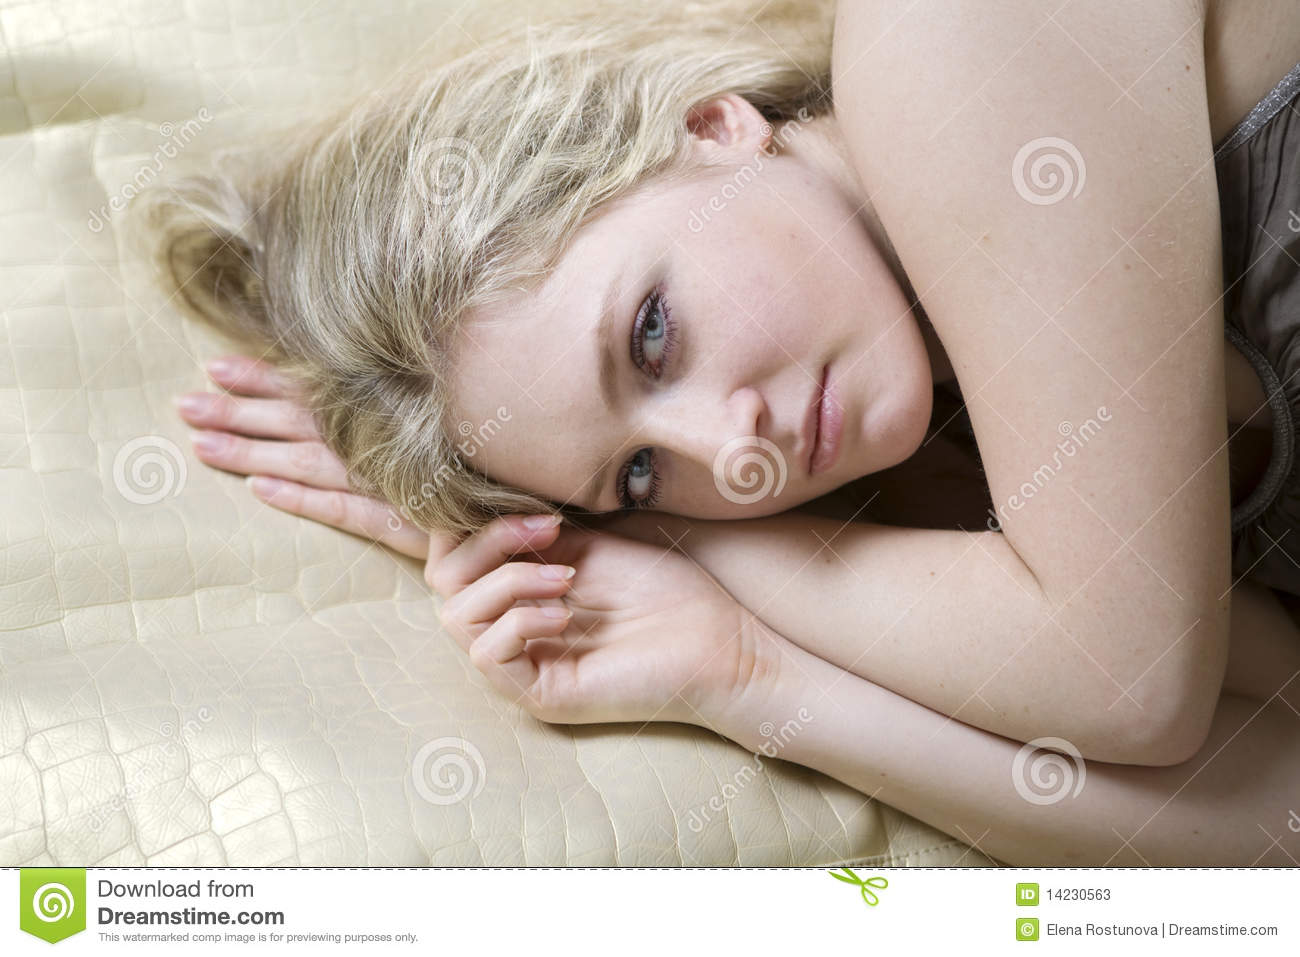 Blond Teen Girl Lying On Bed Stock Image - Image Of Tenderness, Mature 14230563-1317